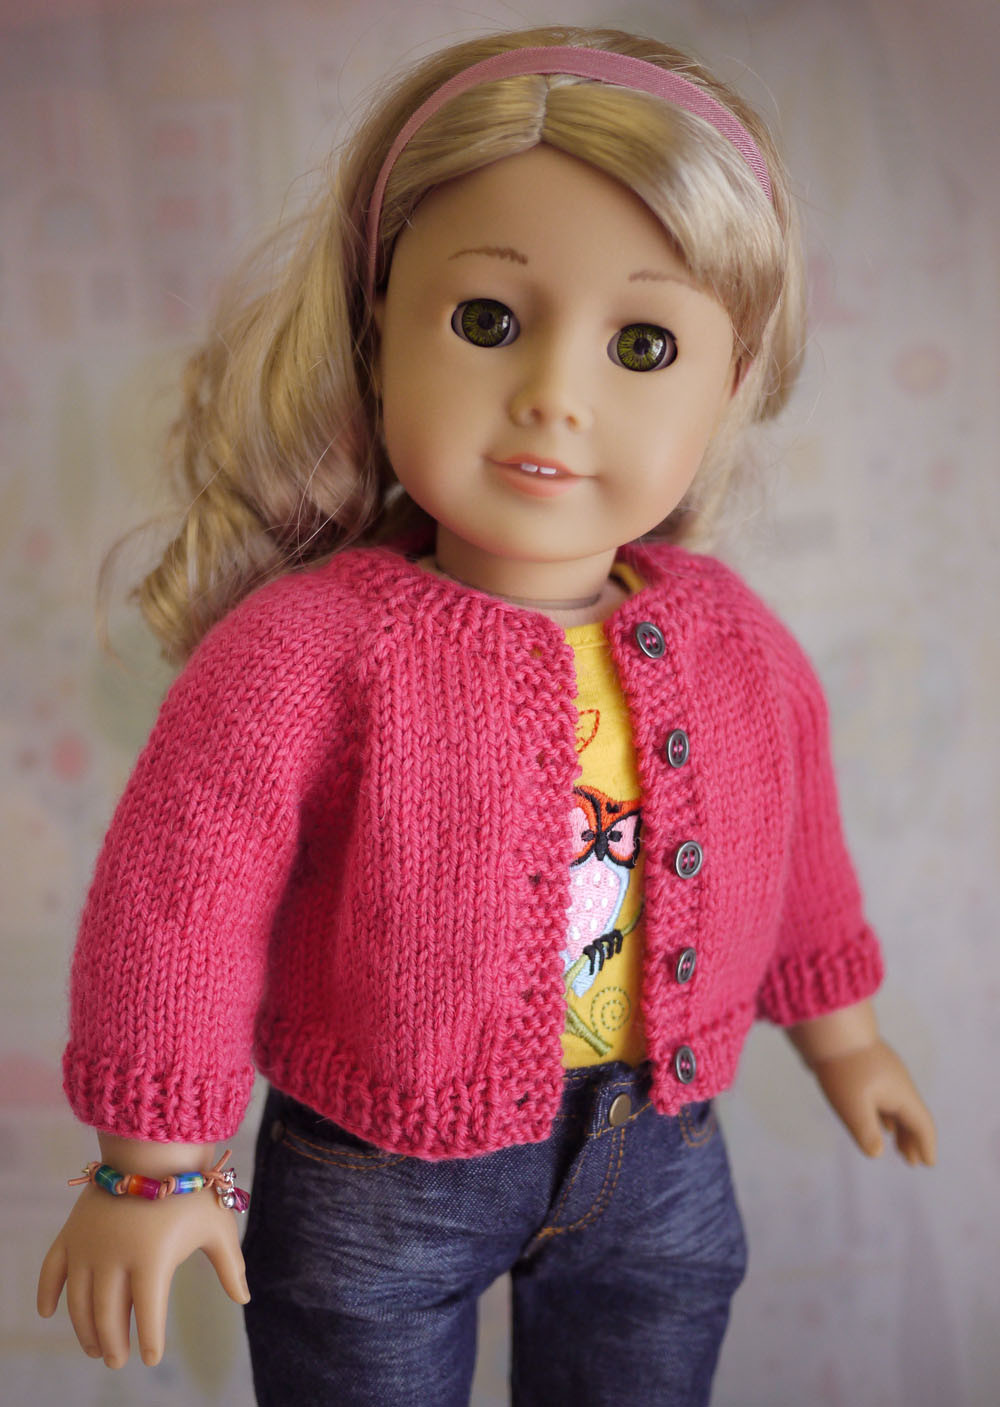 Lovely American Girl Doll Cardigan Sweater Knitting Pattern Free Knitting Patterns for American Girl Dolls Of Delightful 41 Models Free Knitting Patterns for American Girl Dolls